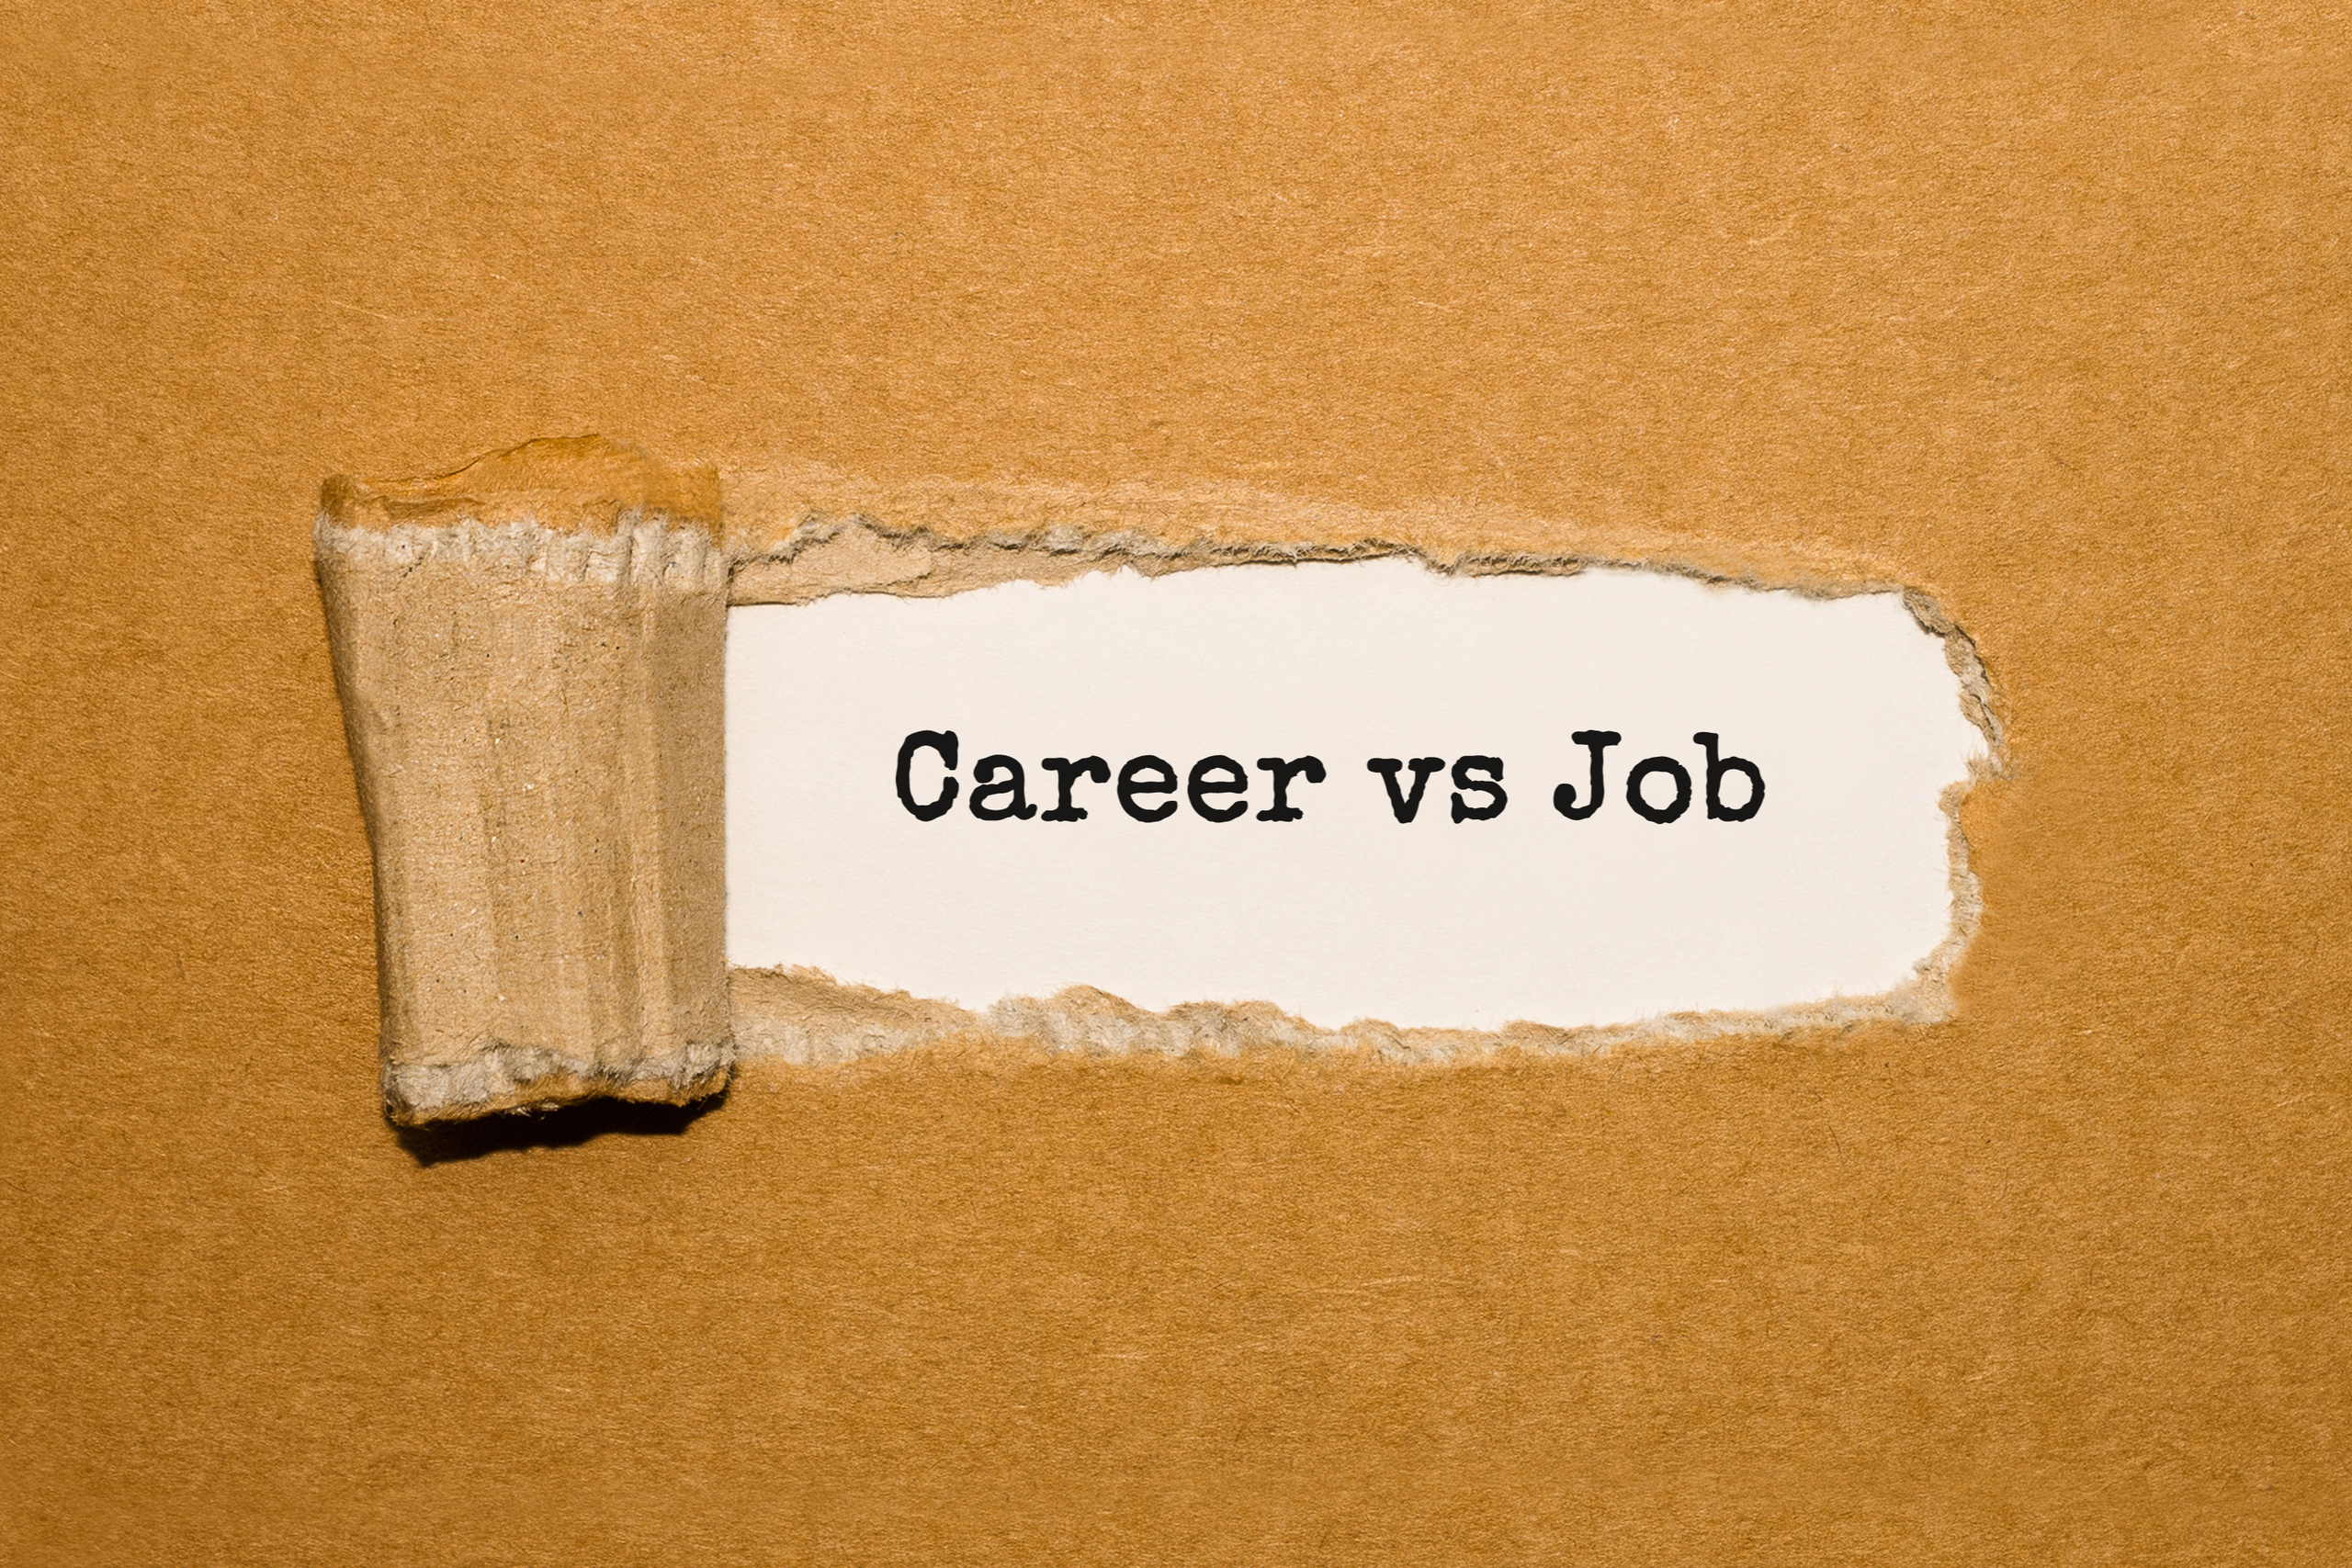 Job vs. Career: What's the Real Difference